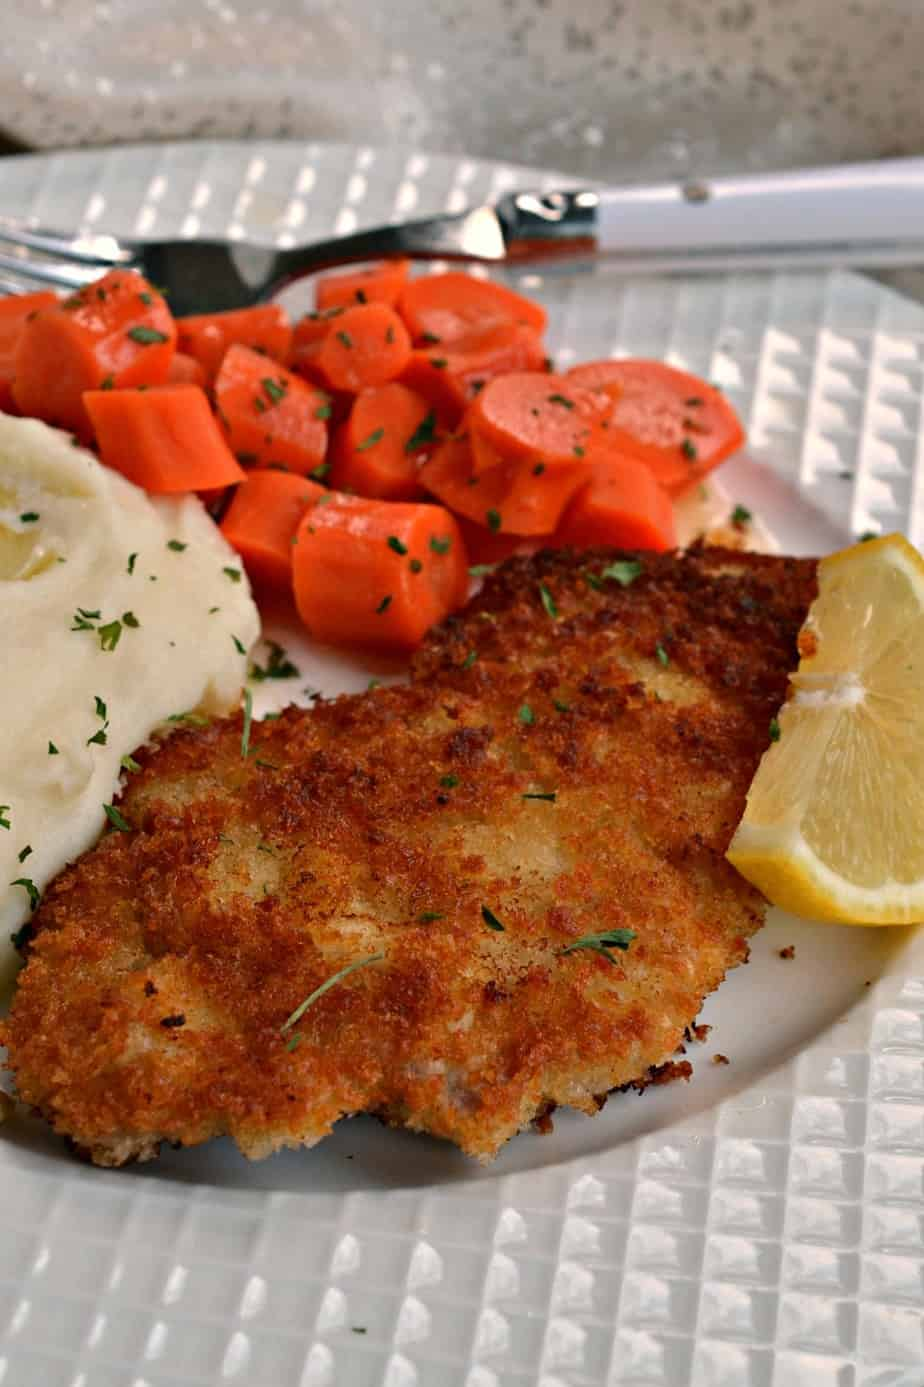 Delicious Pork Schnitzel is quick and easy to make with wholesome pantry ingredients that you may already have on hand.